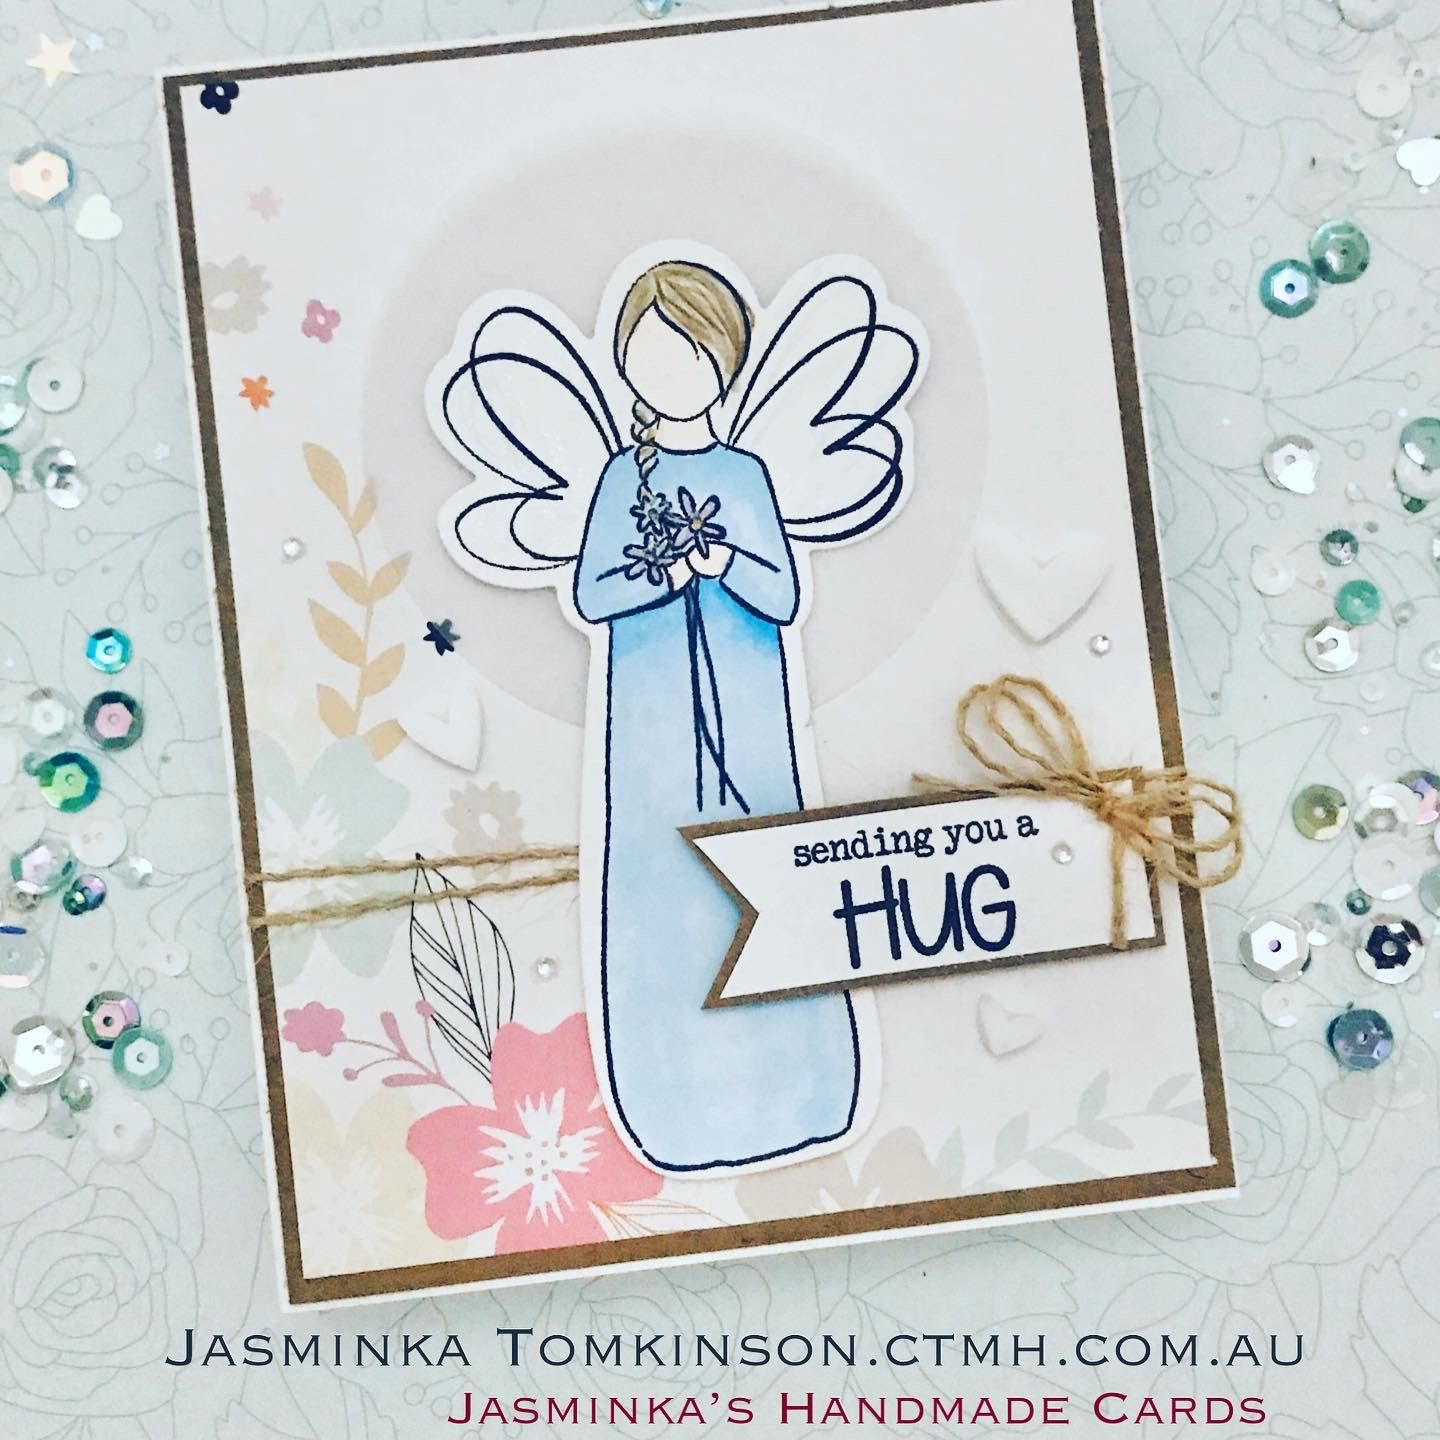 CTMH Miscellaneous Sentiment stamps